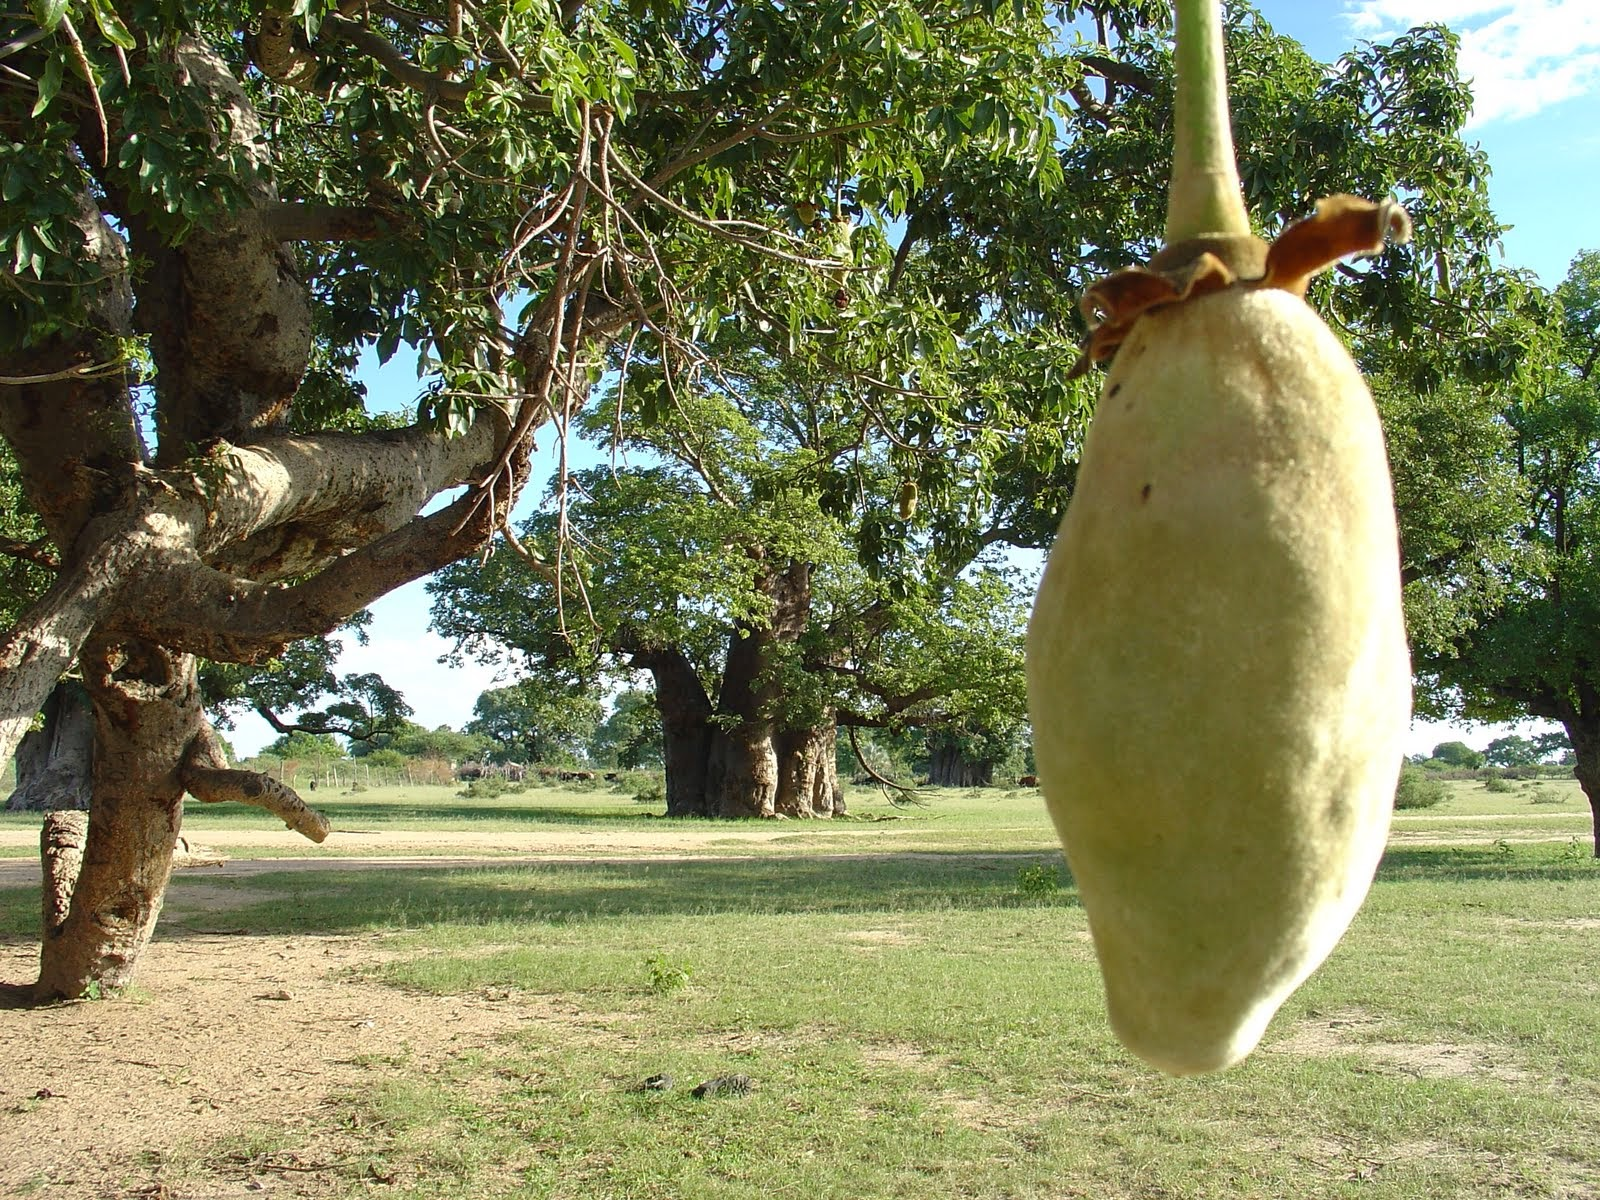 The Baobab Tree is also known as the u201cTree of Lifeu201d u201cThe Chemist Treeu201d and u201cThe Monkey Bread Treeu201d. The scientific name is Adansonia Digitata. & Liliana Usvat - Reforestation and Medicinal use of the Trees ...